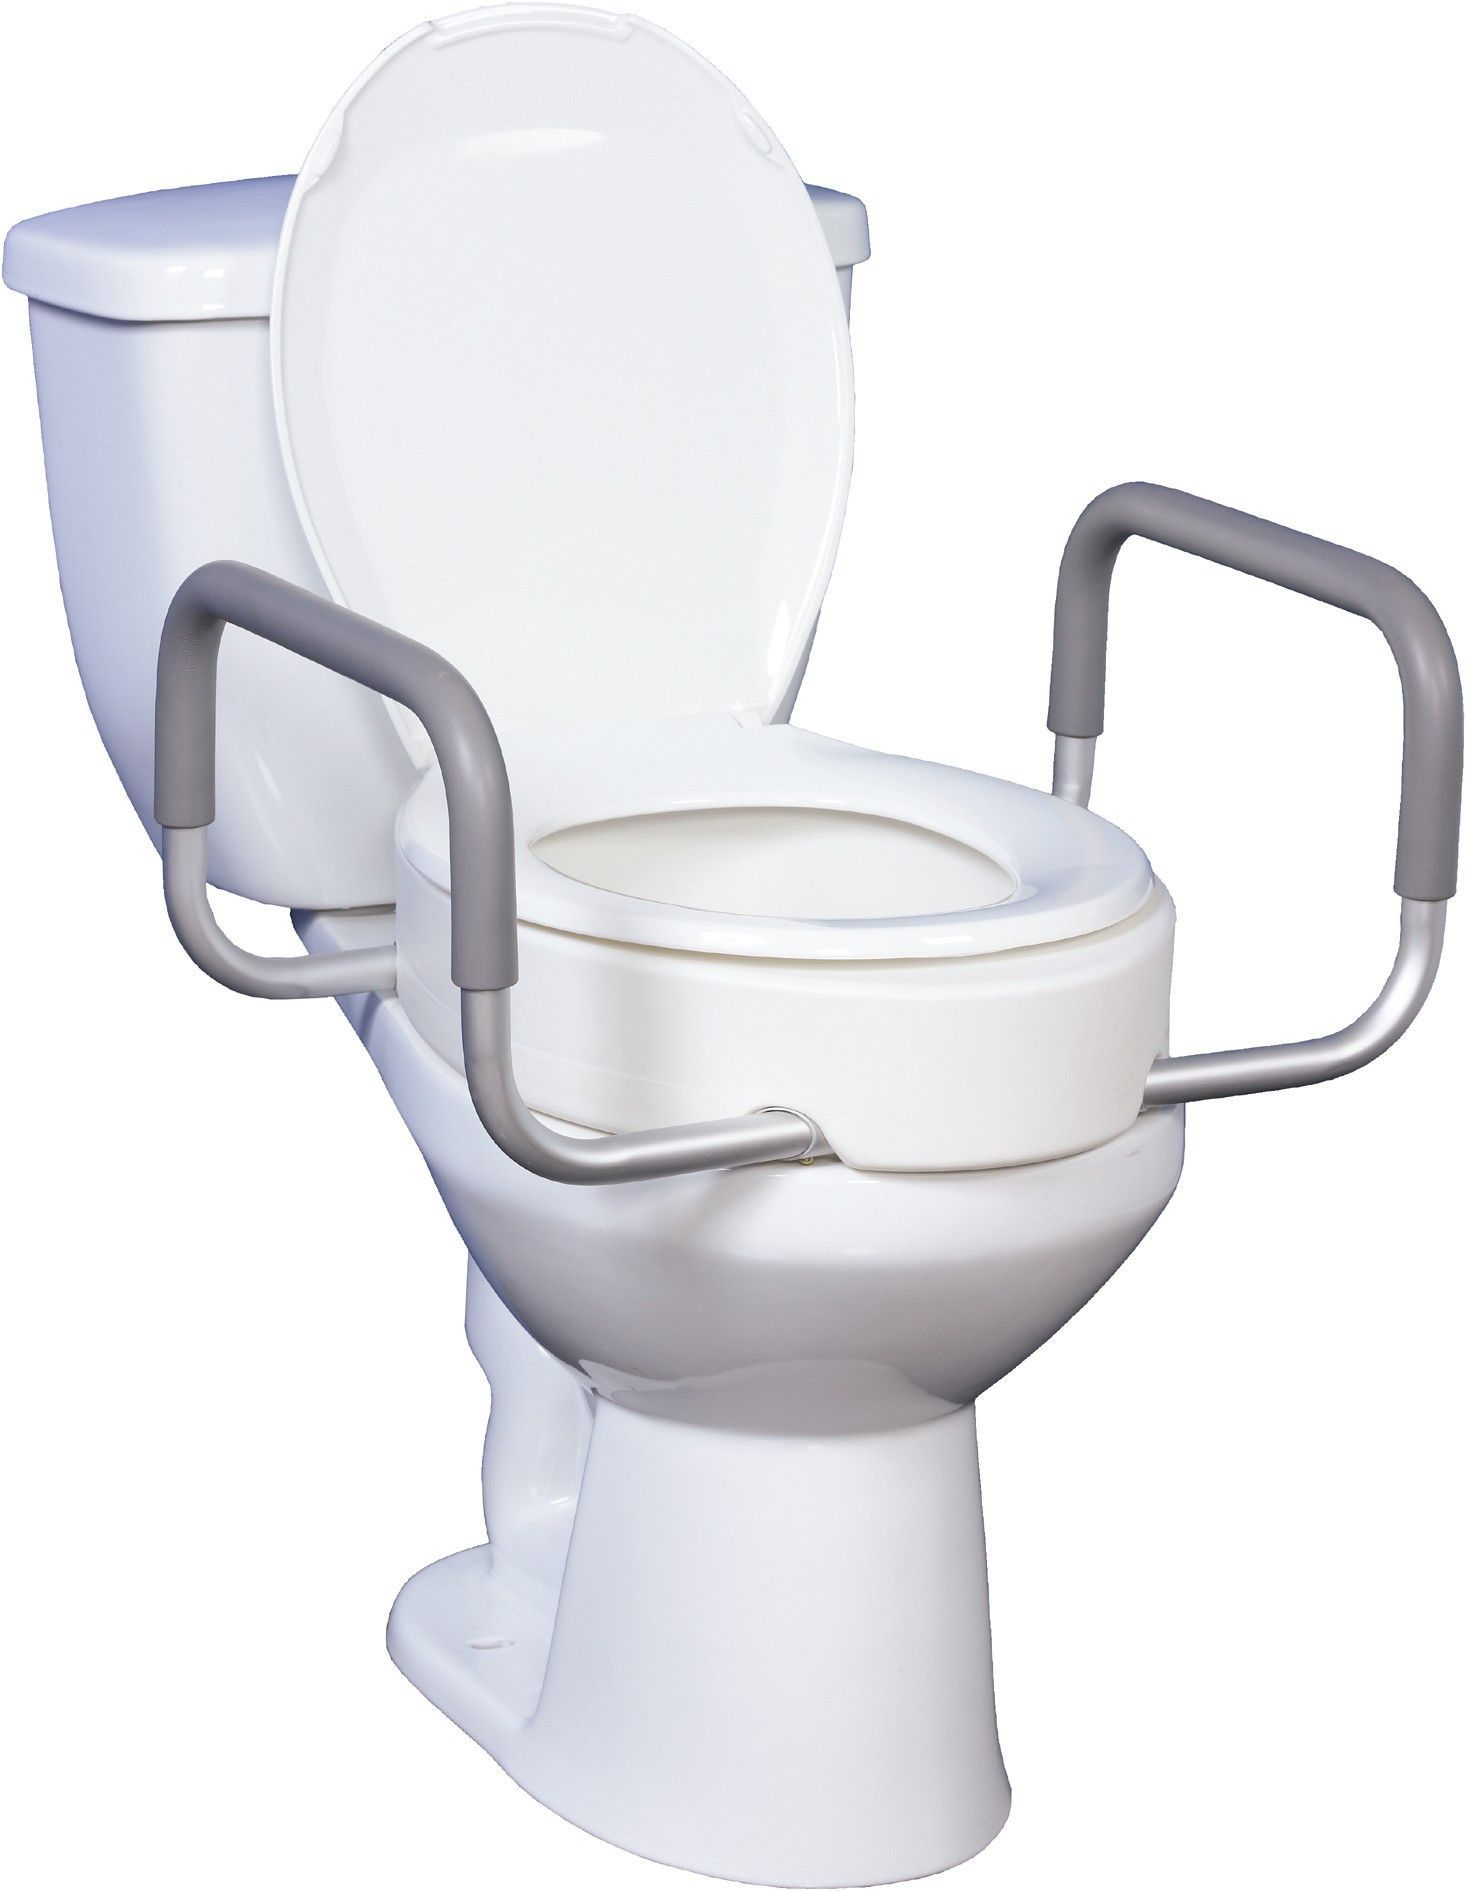 Pleasant Raised Toilet Seat With Removable Arms Products Handicap Caraccident5 Cool Chair Designs And Ideas Caraccident5Info